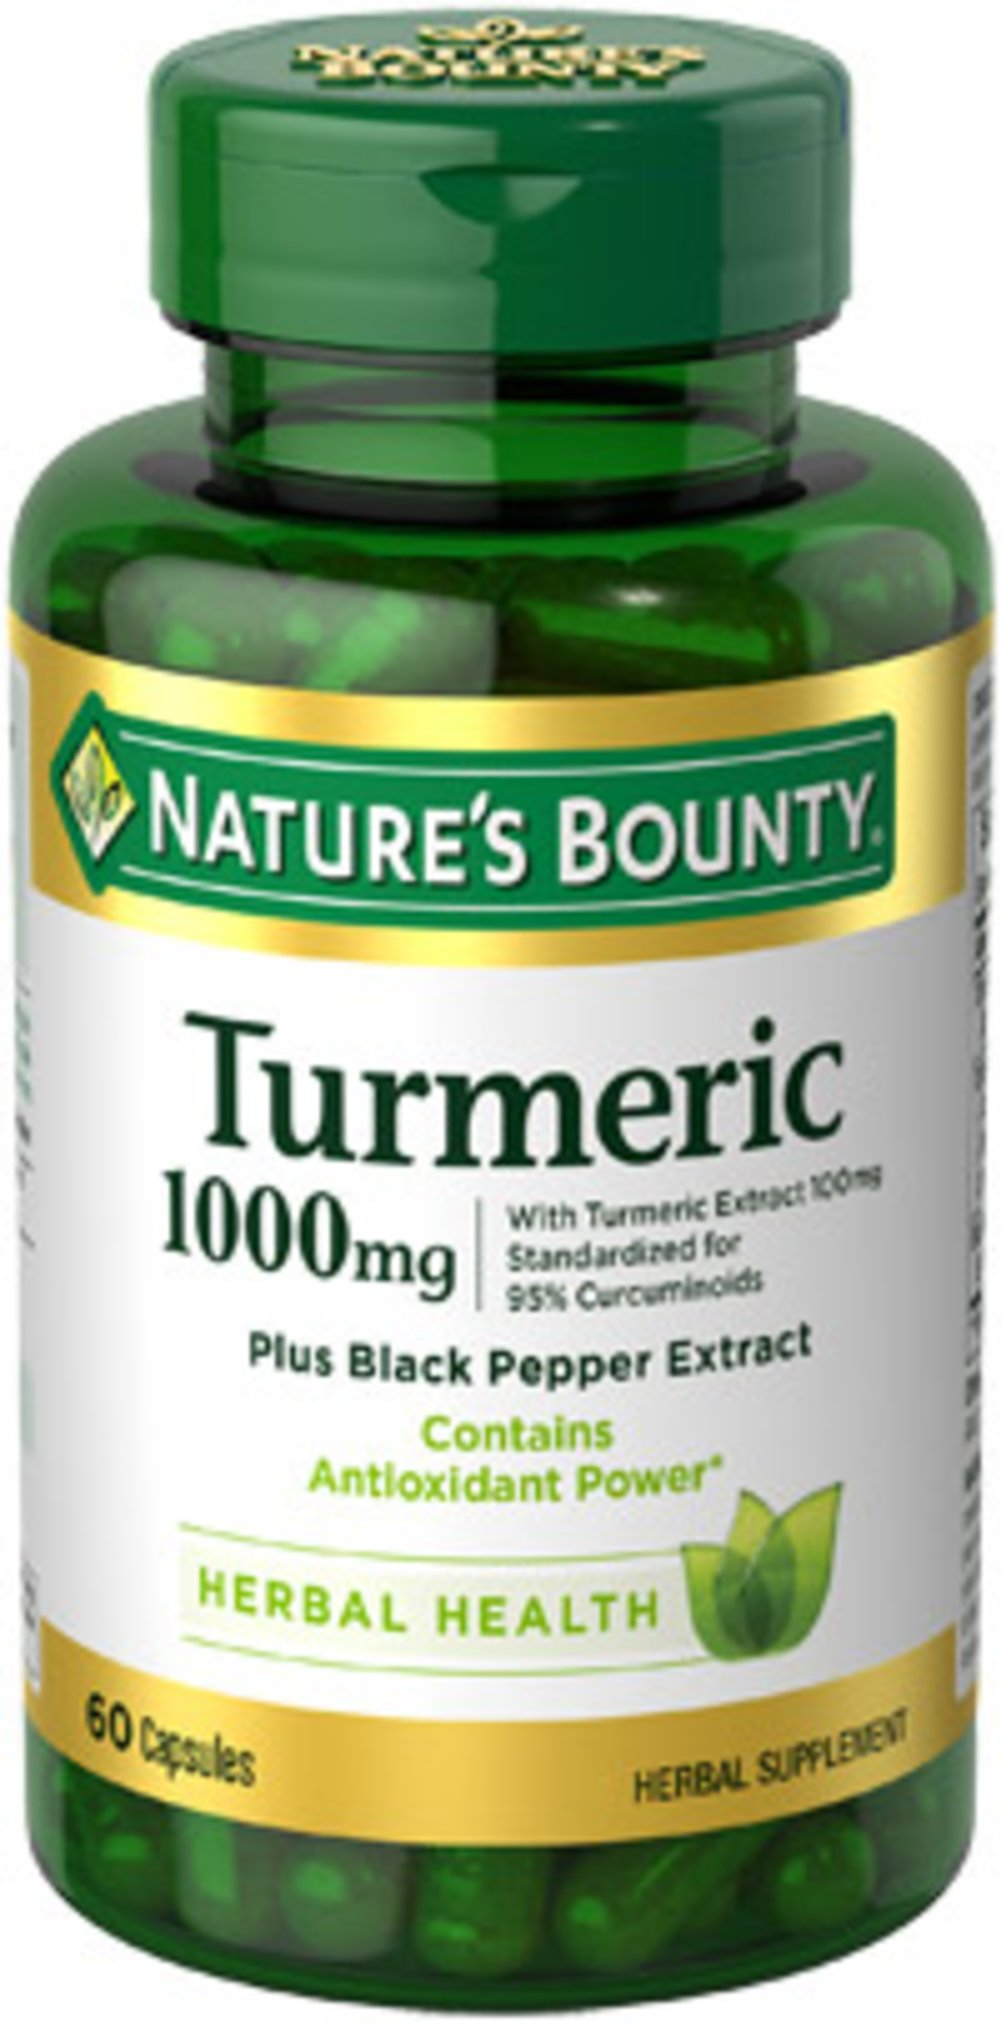 Nature's Bounty® Turmeric 1000 mg